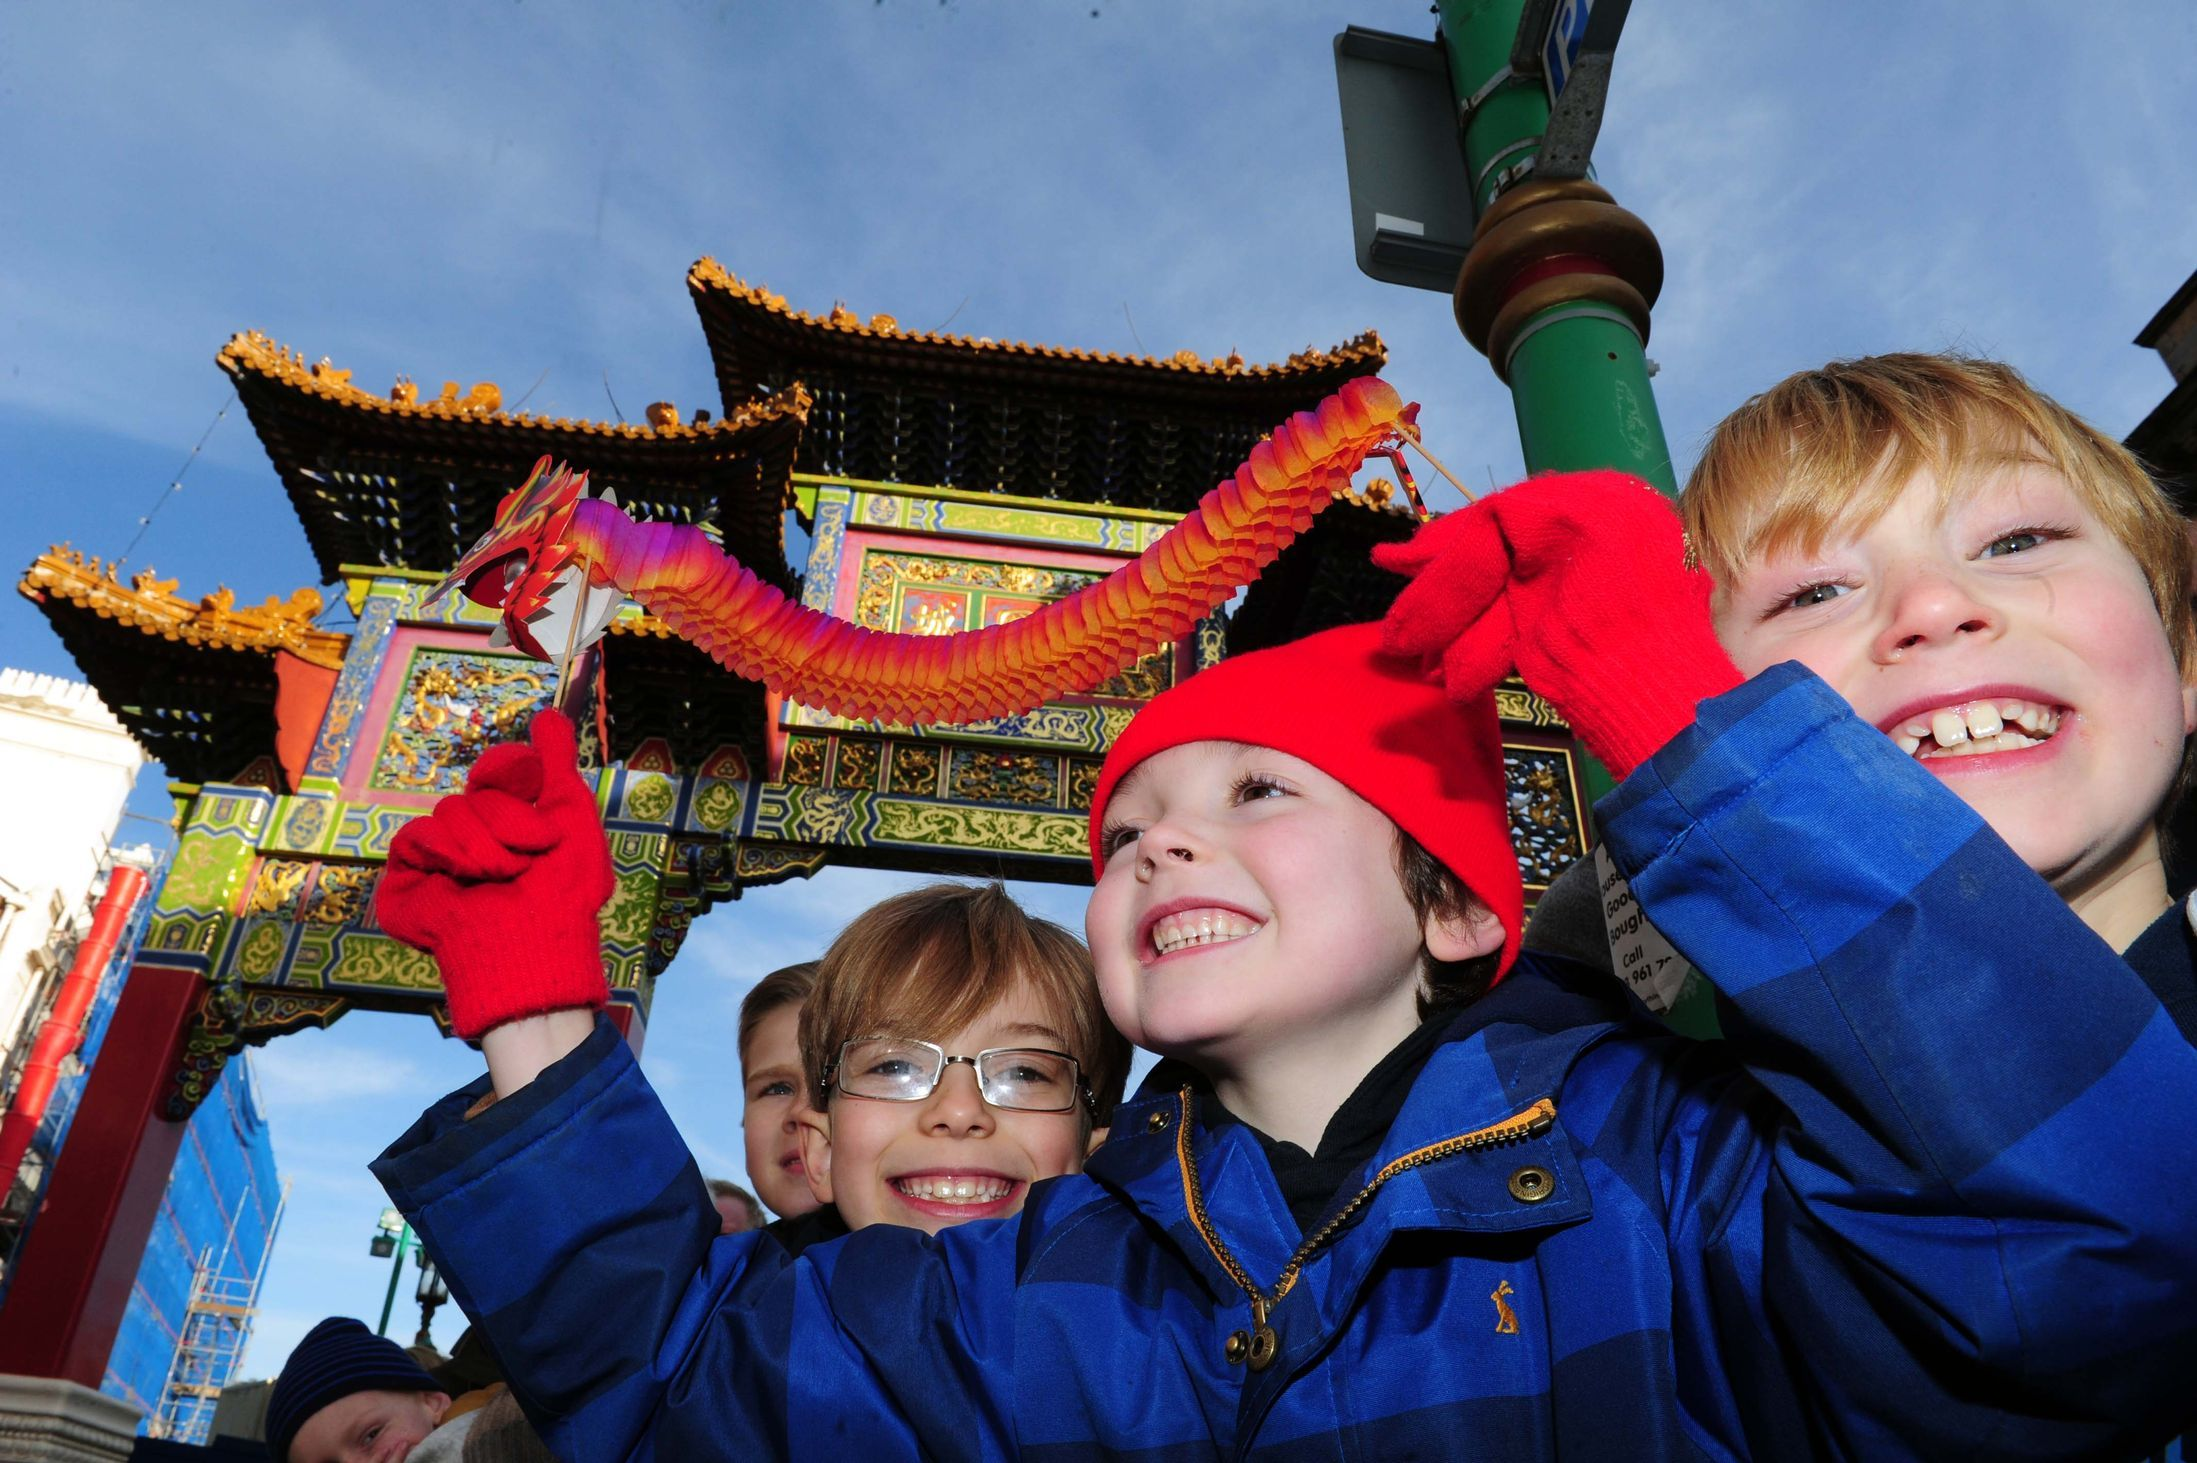 Liverpool Chinese New Year 2015 City's Year of the Goat